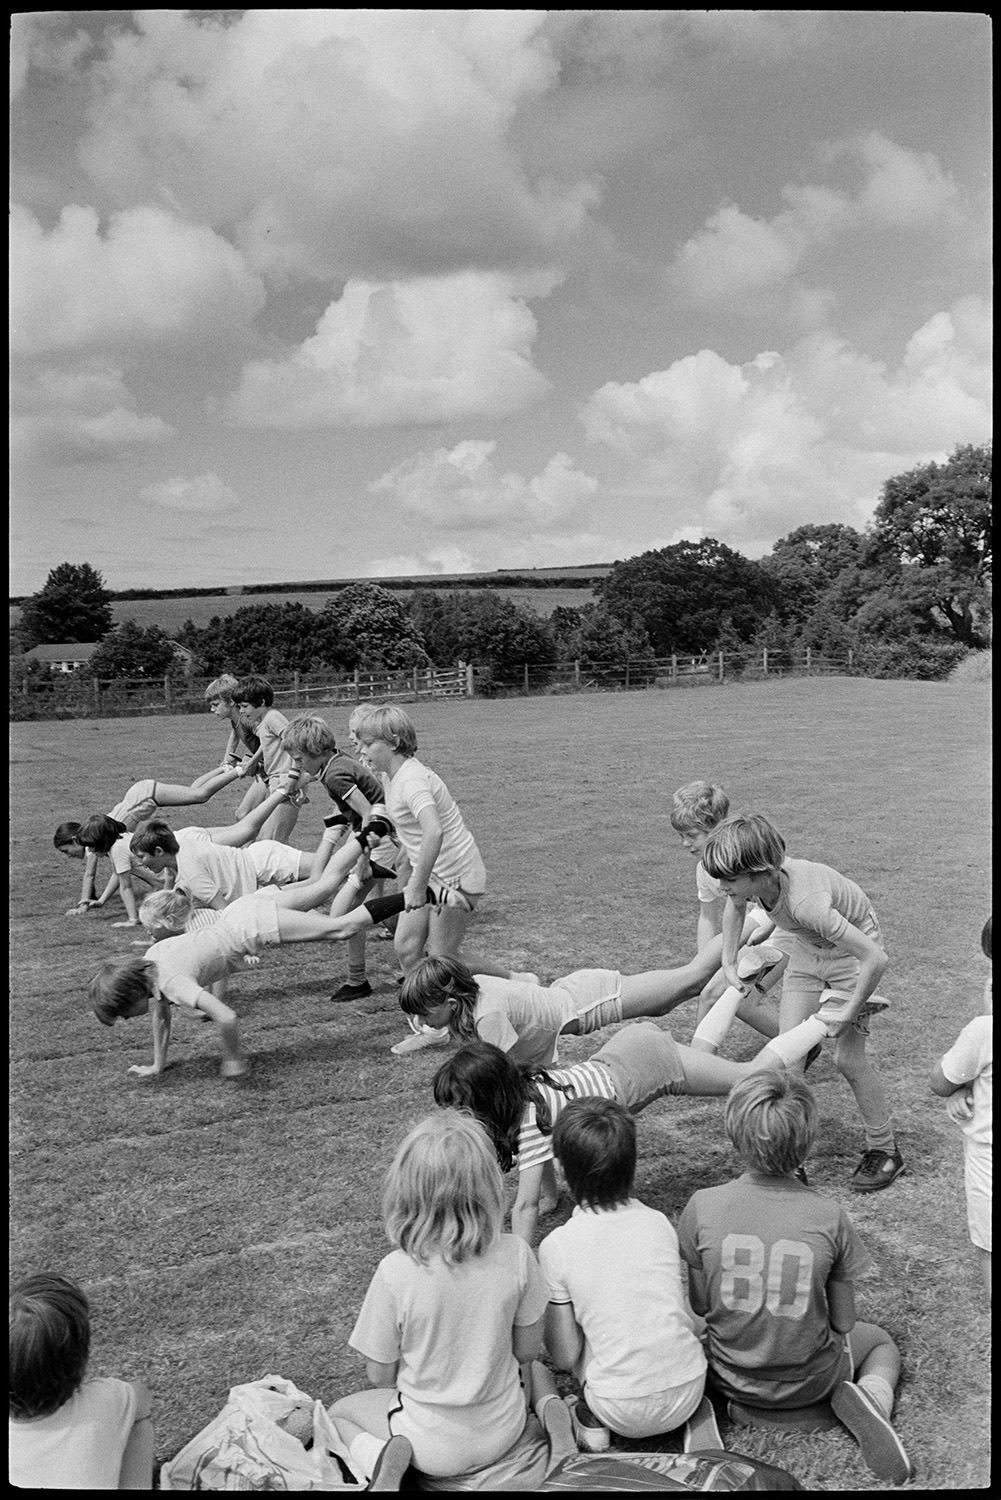 School sports day, children running races.<br /> [Children participating in a wheelbarrow race at the Dolton Primary School Sports Day. In the background are trees surrounding the field and clouds are in the sky.]